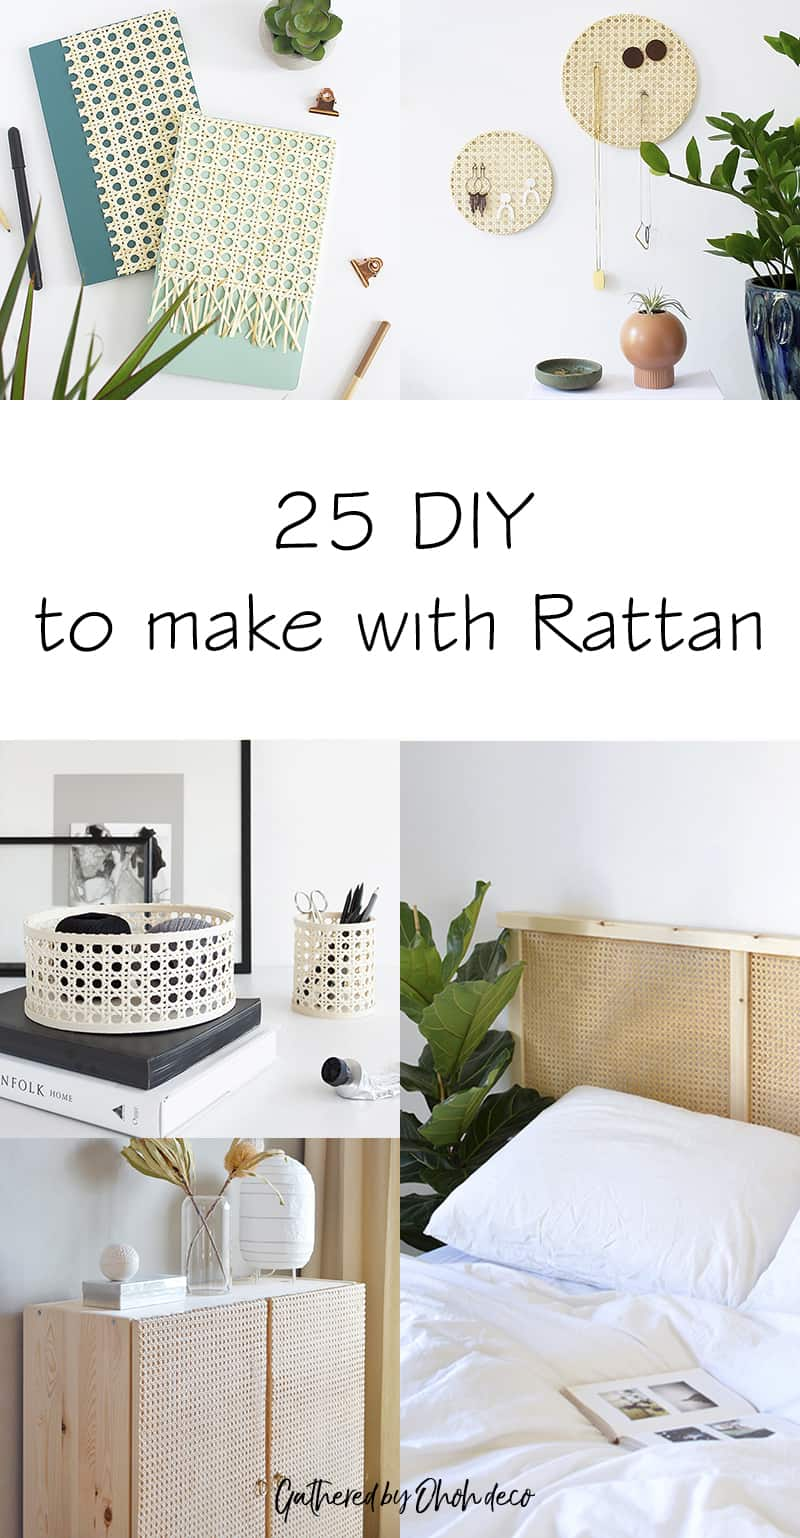 Rattan DIY ideas